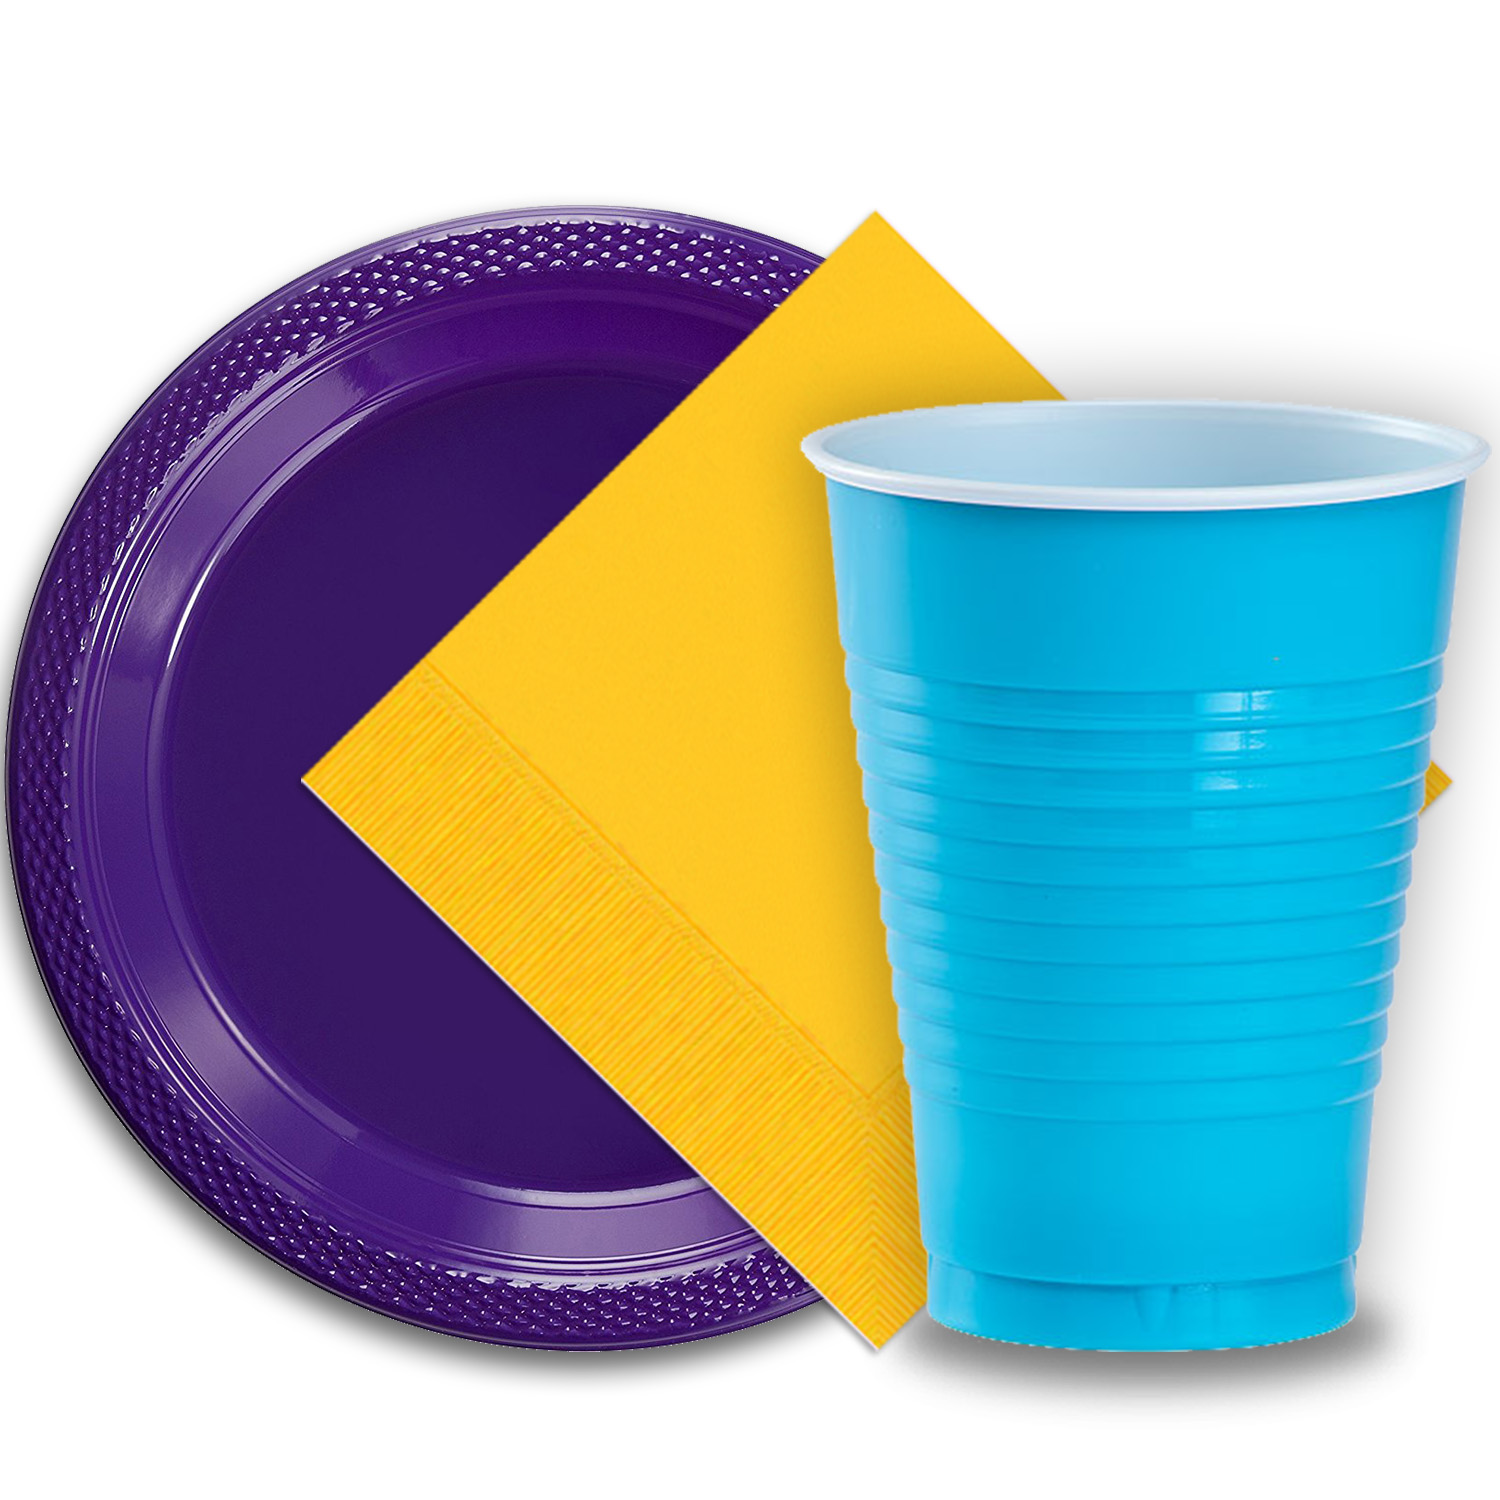 """50 Purple Plastic Plates (9""""), 50 Aqua Plastic Cups (12 oz.), and 50 Yellow Paper Napkins, Dazzelling Colored Disposable Party Supplies Tableware Set for Fifty Guests."""